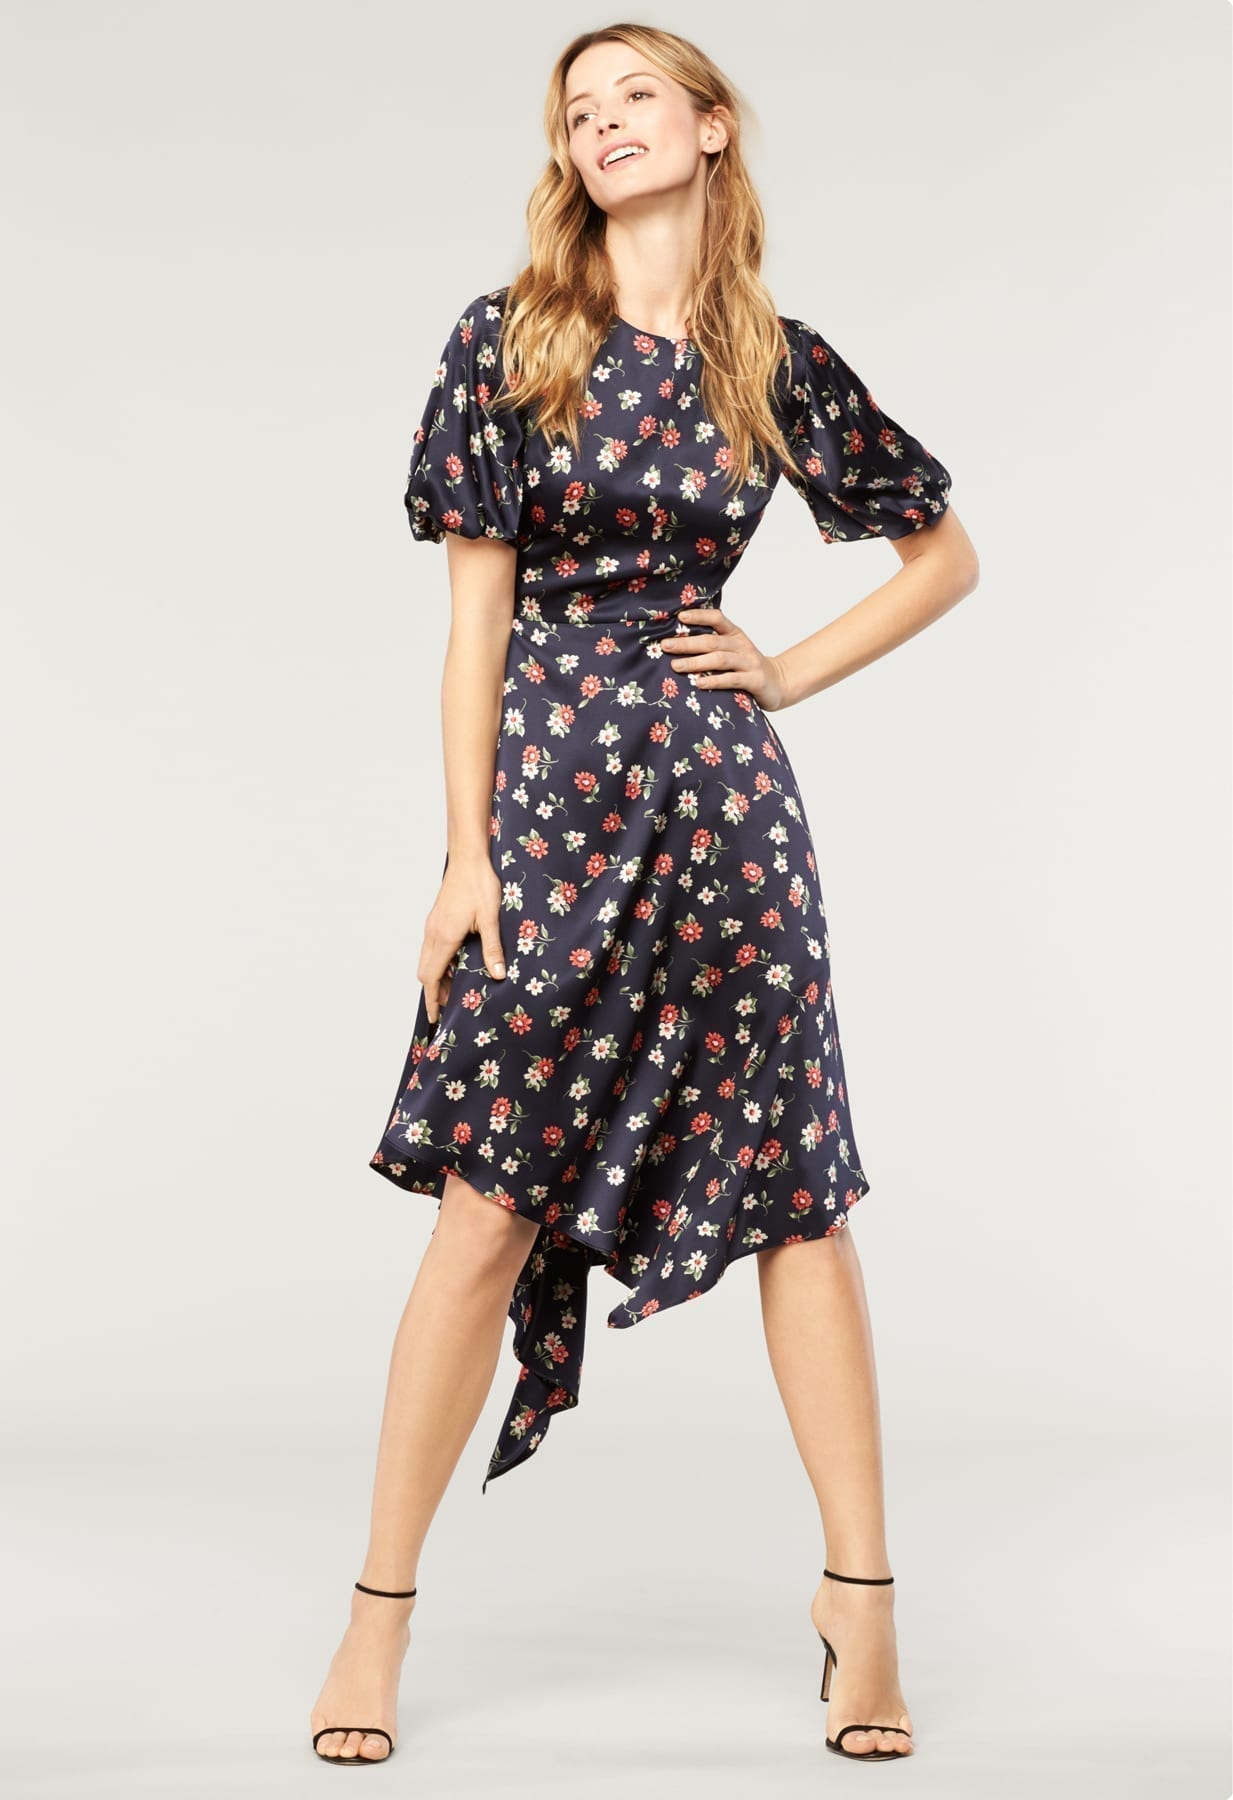 MILLY Silk On Cynthia Multi / Floral Printed Dress - We Select Dresses